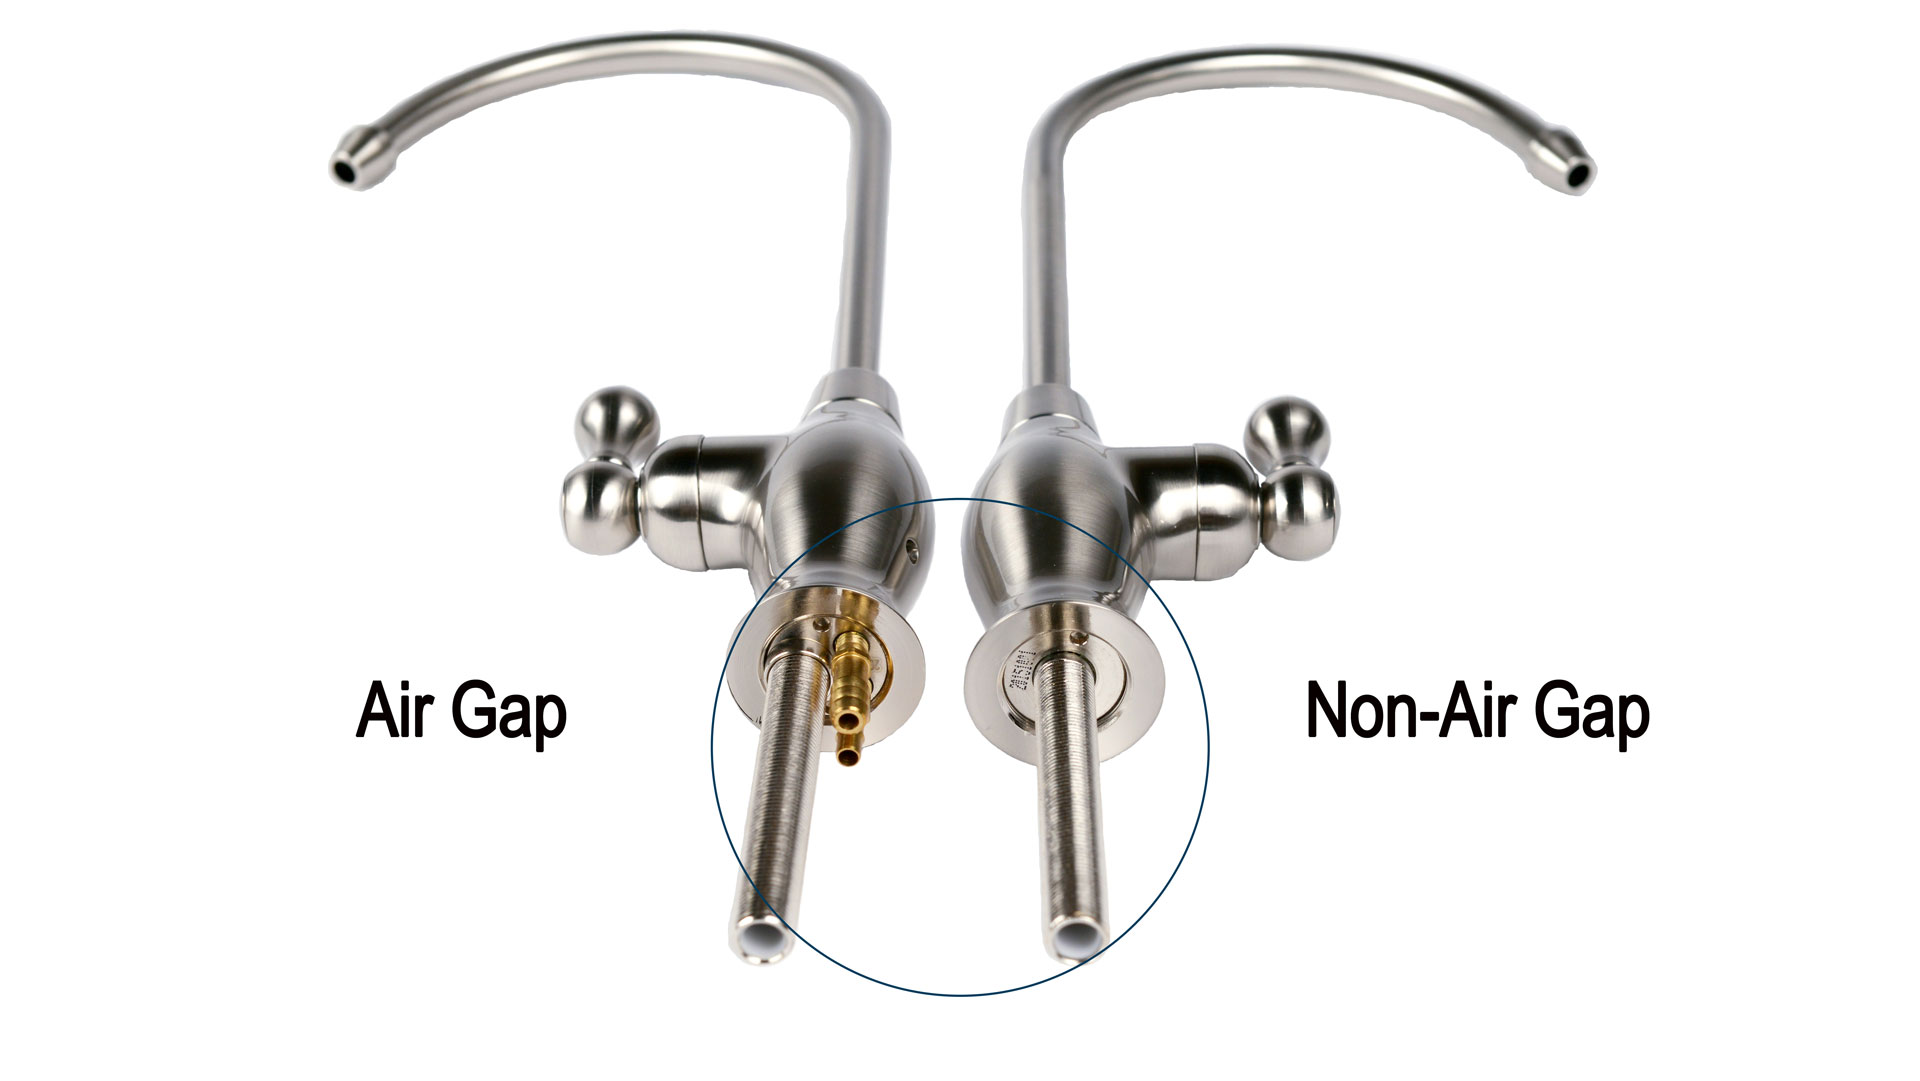 Air Gap Vs Non Faucet Esp Water Products Parts Diagram For The Standard Collection Two Handle Bar Model Picture Of An Side By A